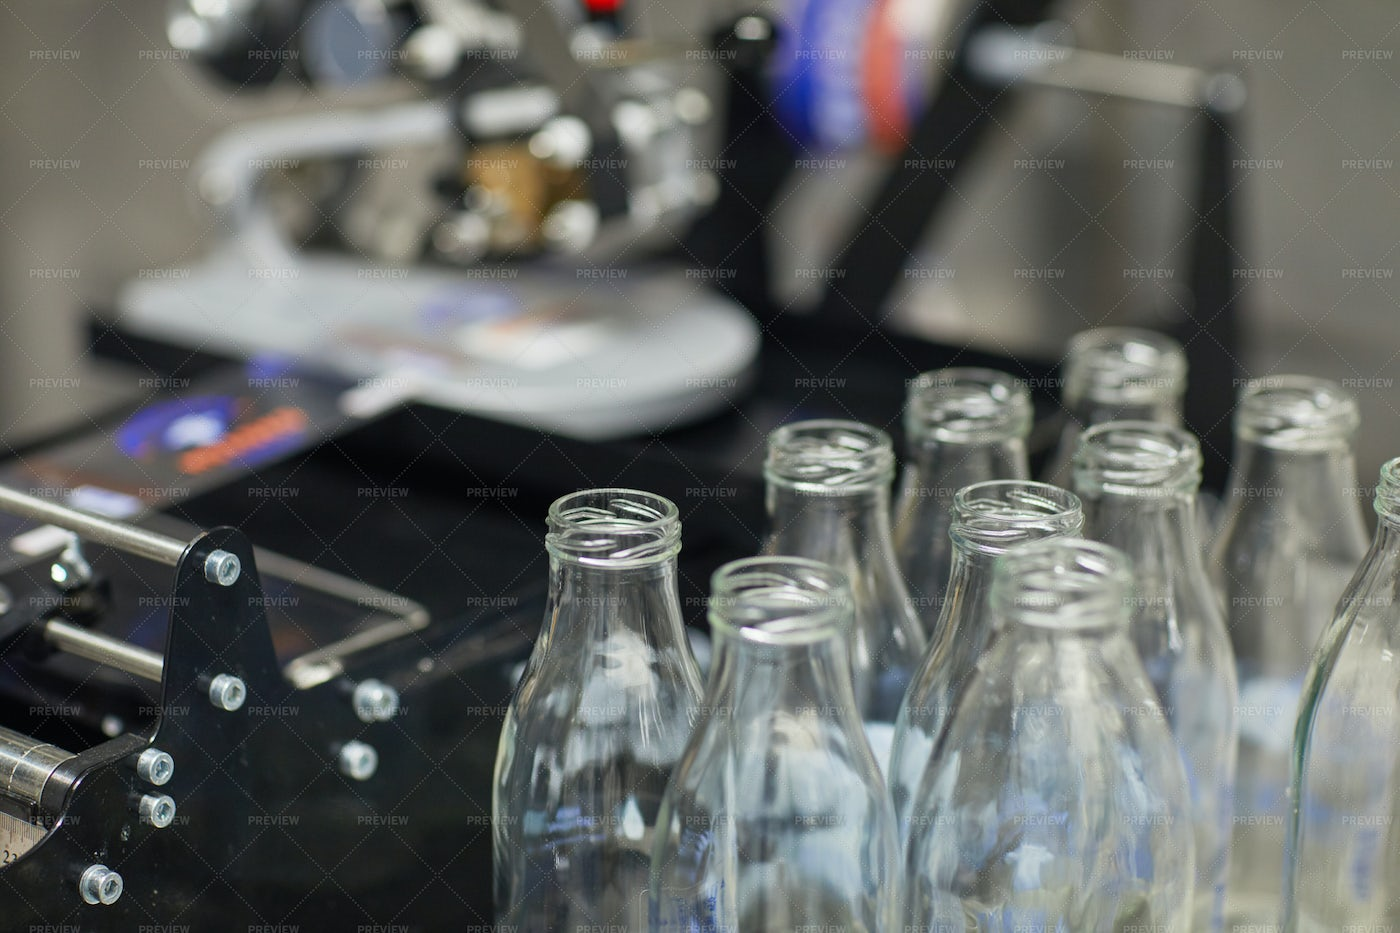 Glass Bottles At The Dairy Factory: Stock Photos